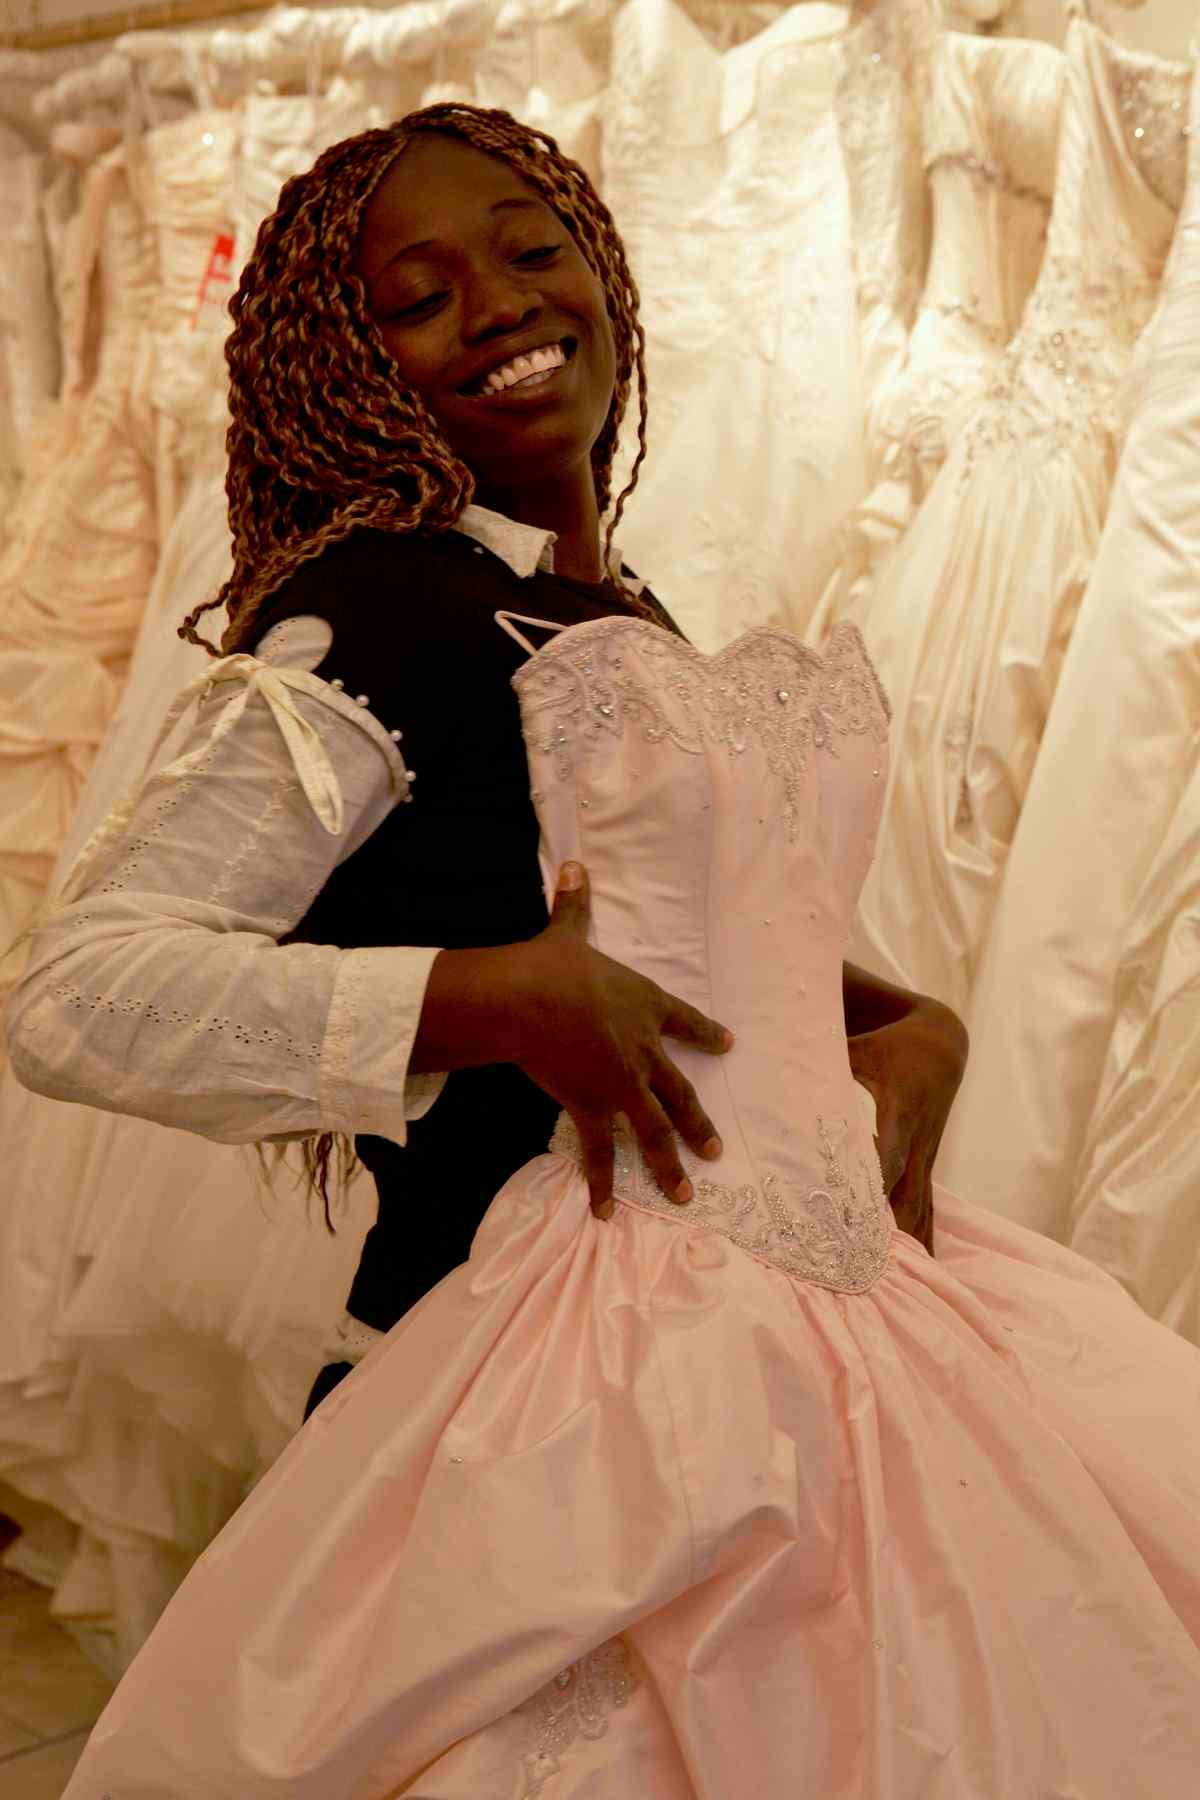 Francess N. Smart poses in a wedding dress shop during a lucky visit to the UK